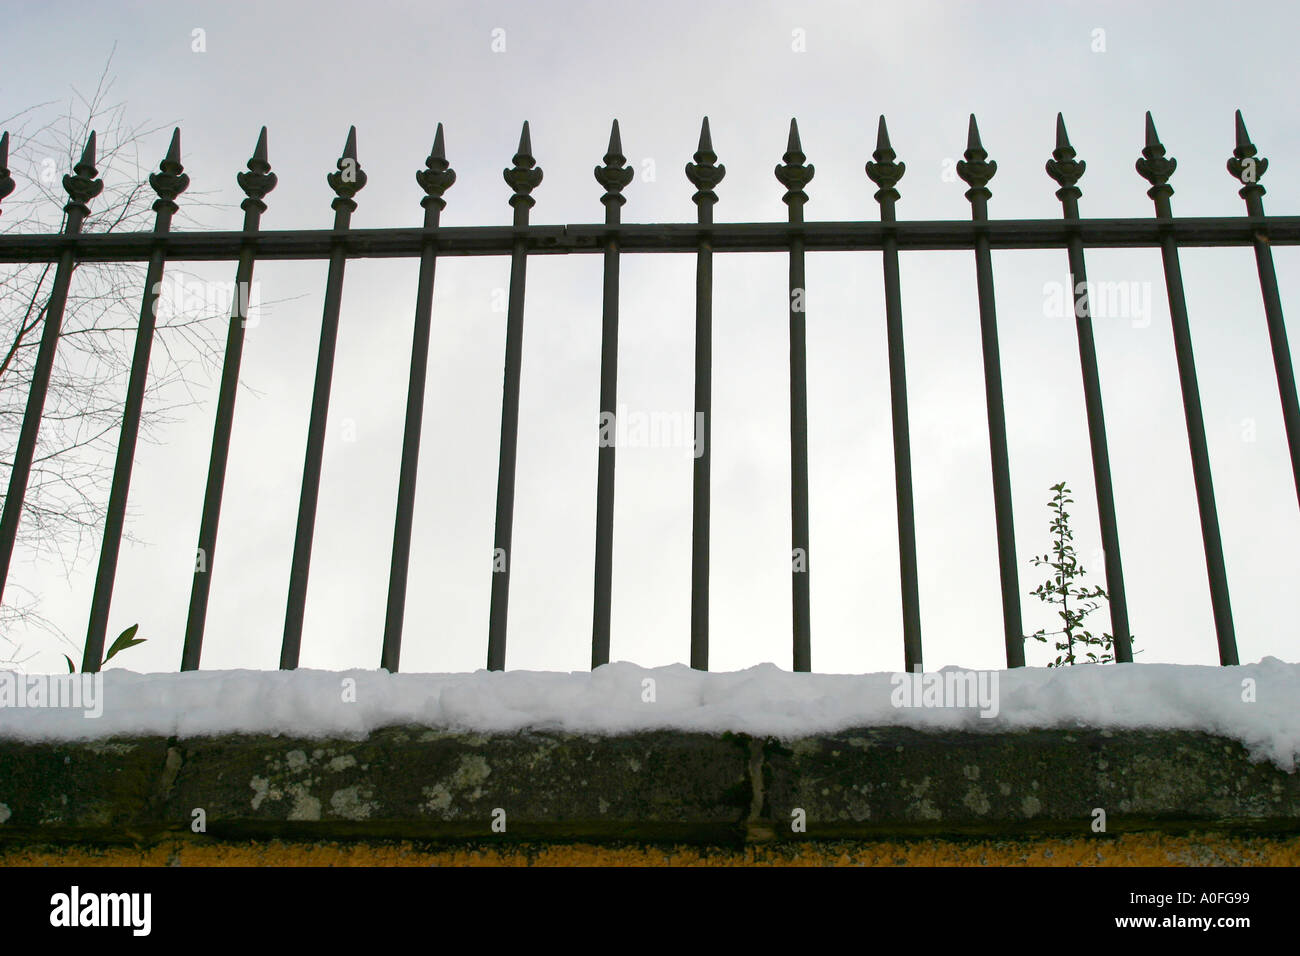 Cast iron railings on top of wall - Stock Image